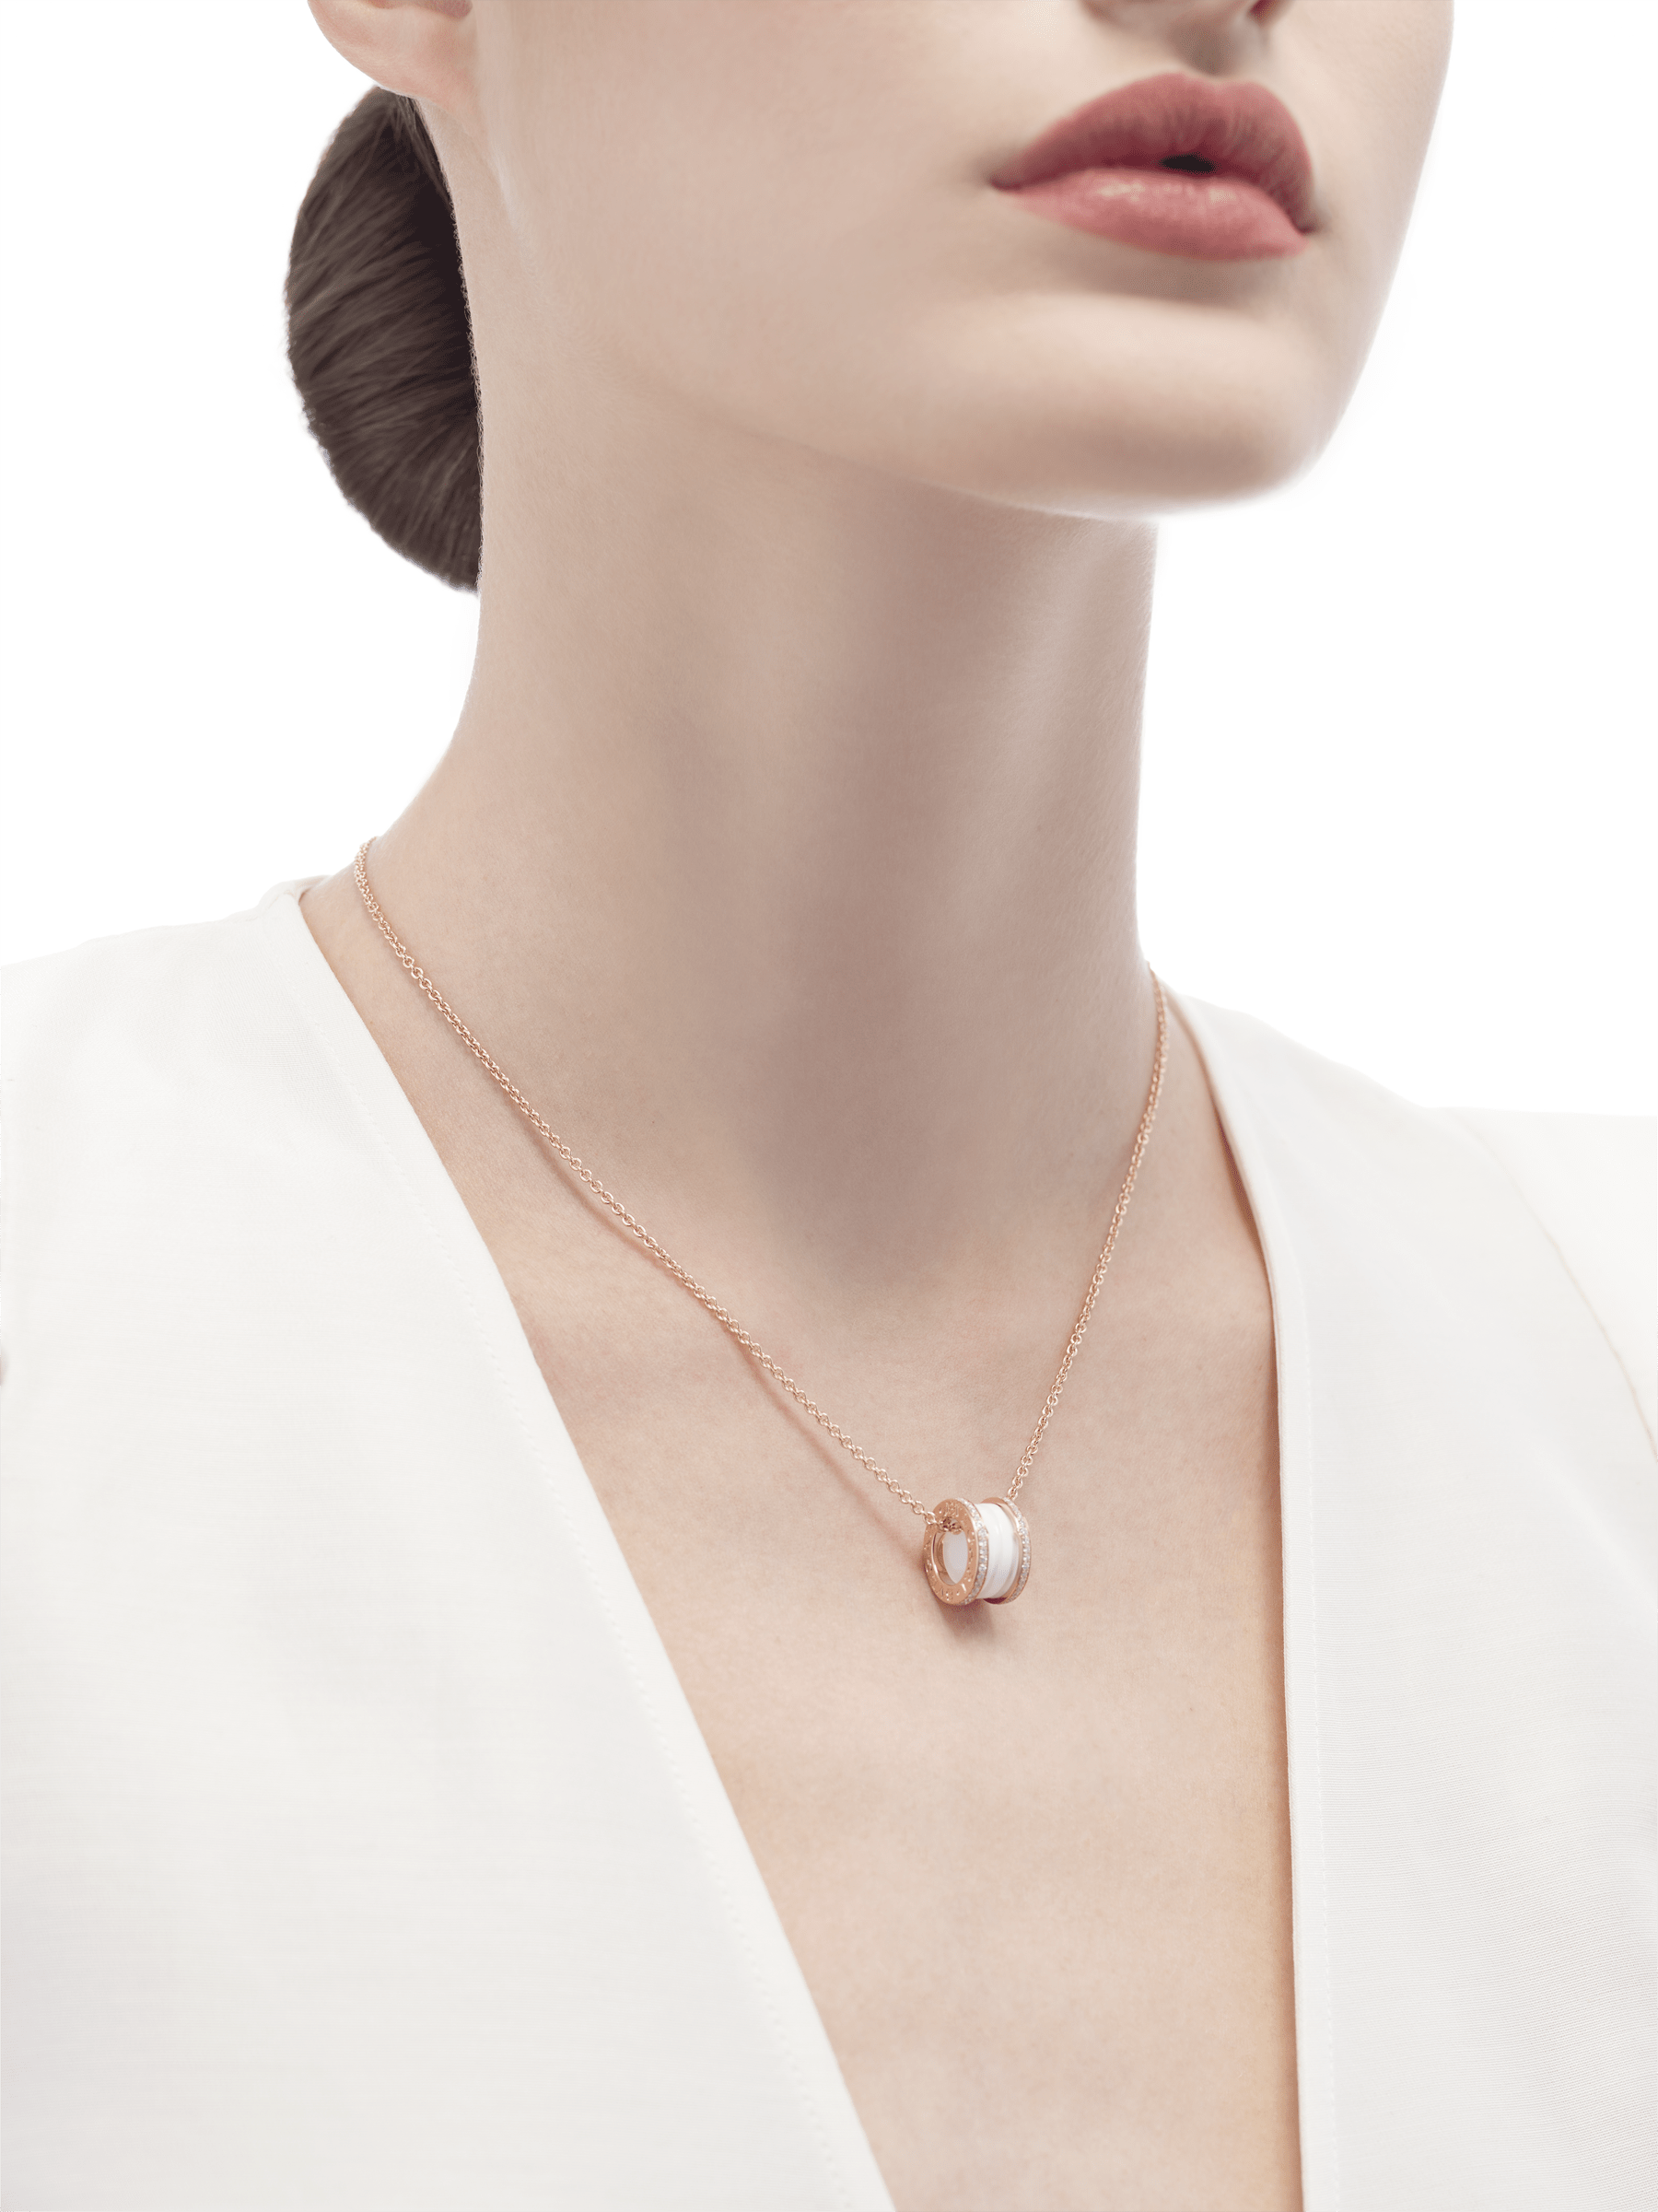 B.zero1 necklace with 18 kt rose gold chain and round pendant with two 18 kt rose gold loops set with pavé diamonds on the edges and a white ceramic spiral. 350053 image 4